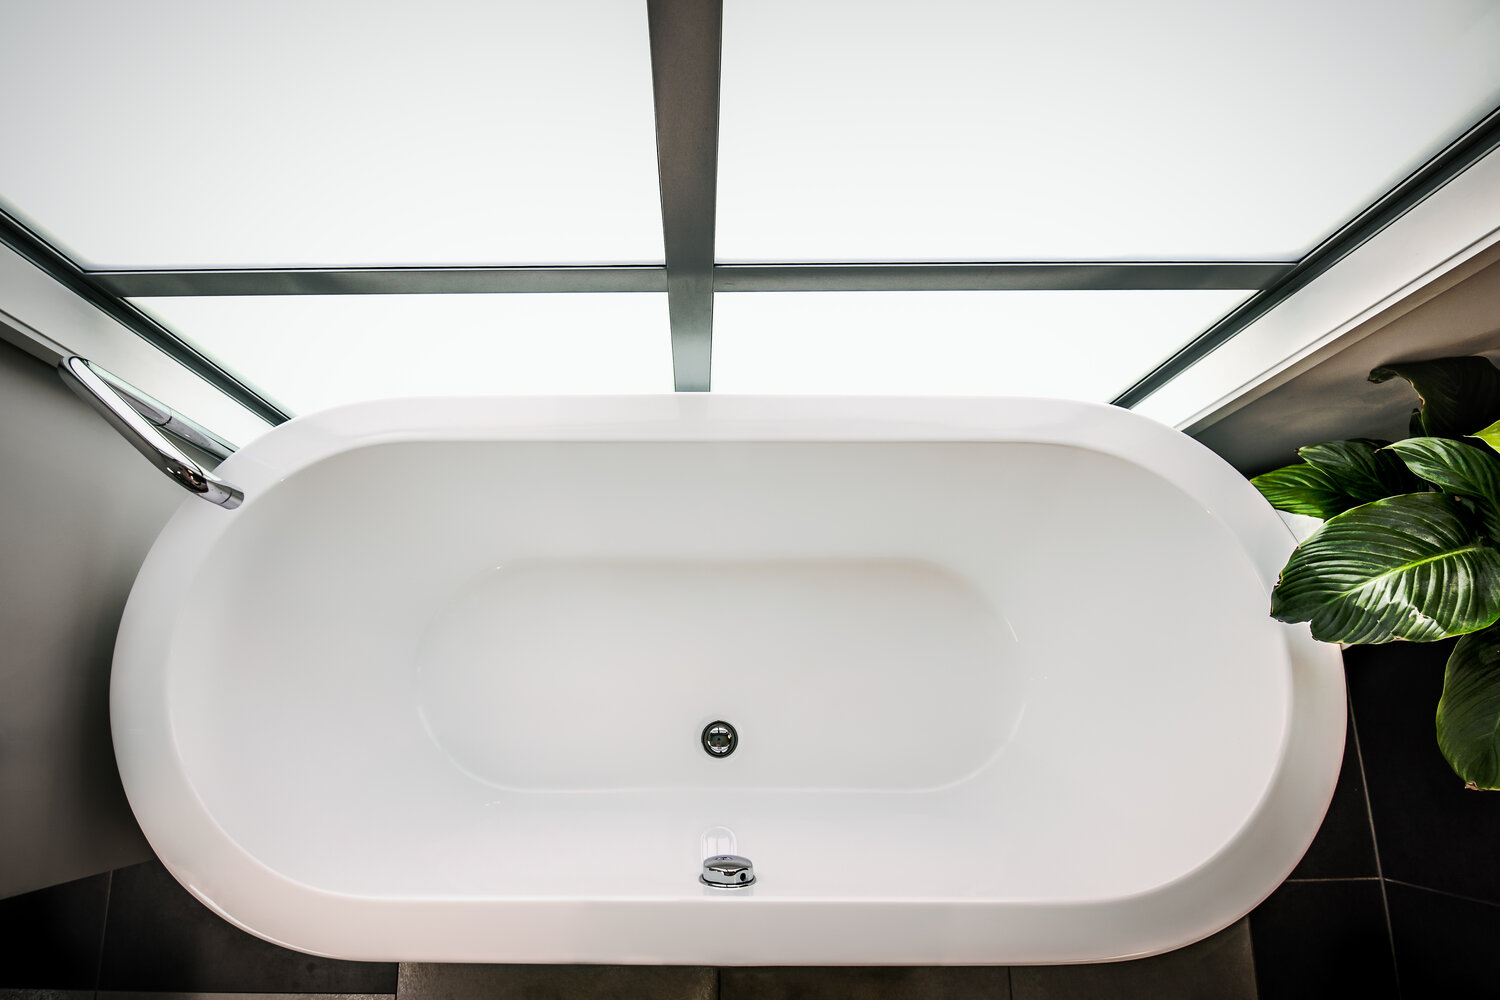 specifying bathtubs and showers for commercial and residential